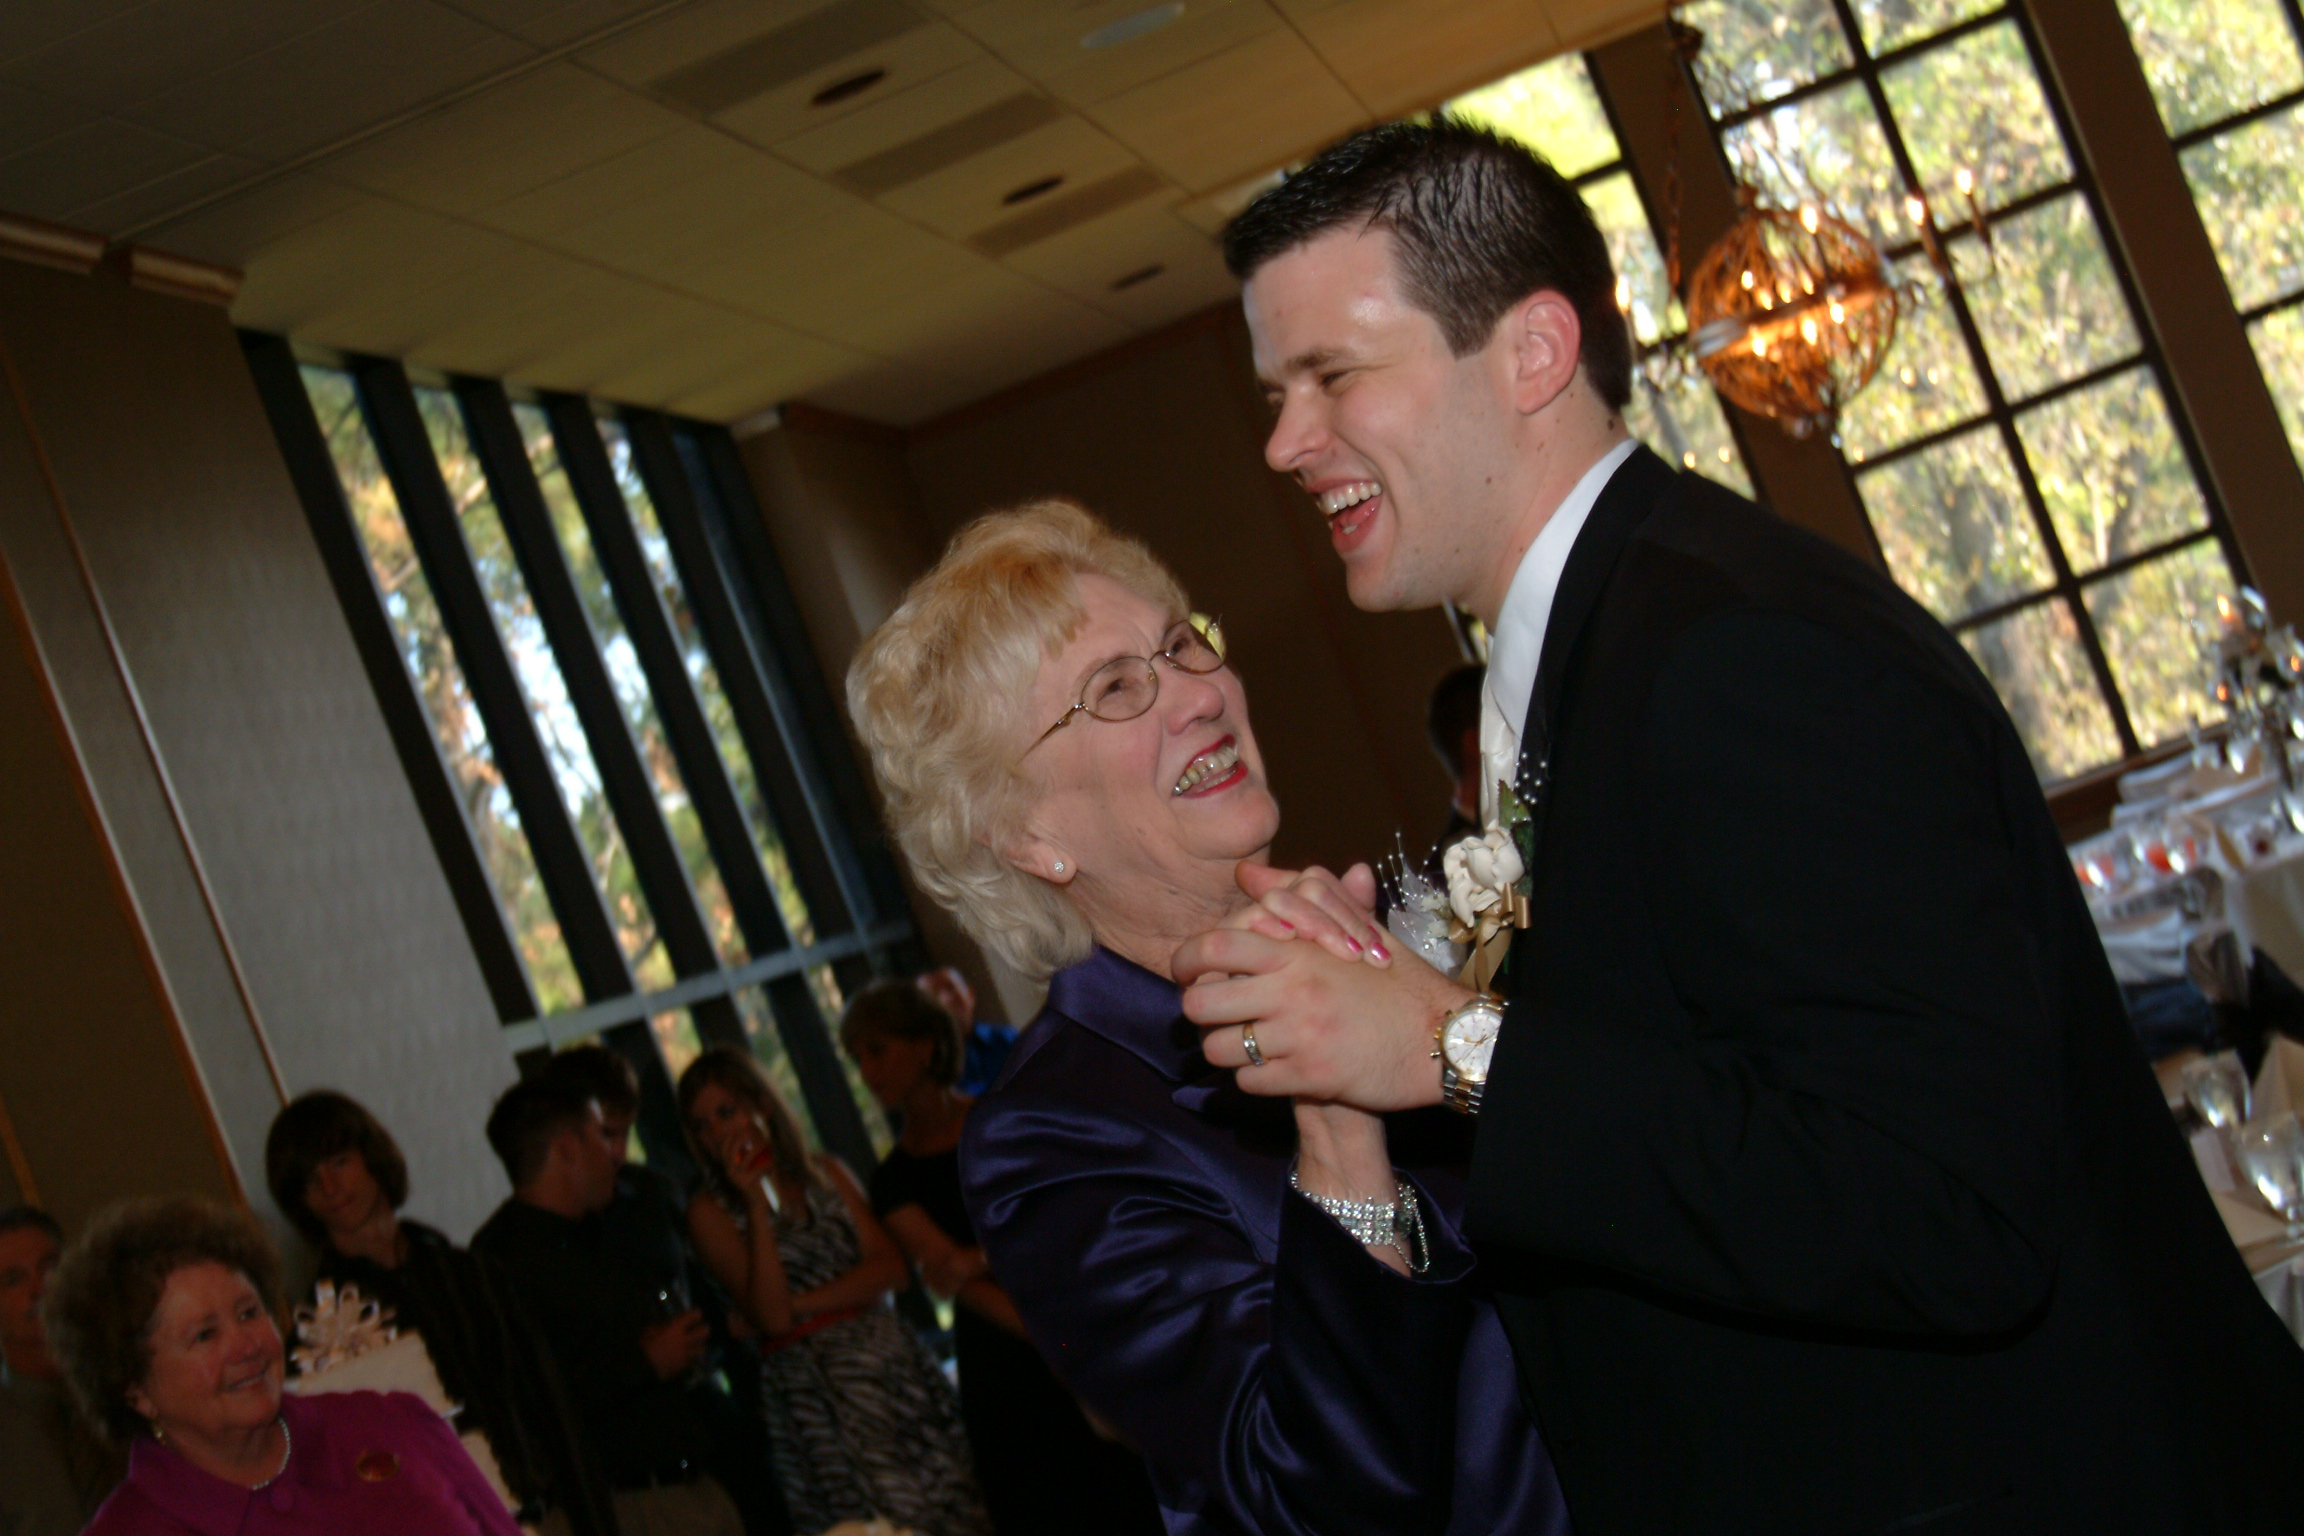 Dancing with her oldest grandson on his wedding day, October 2008.